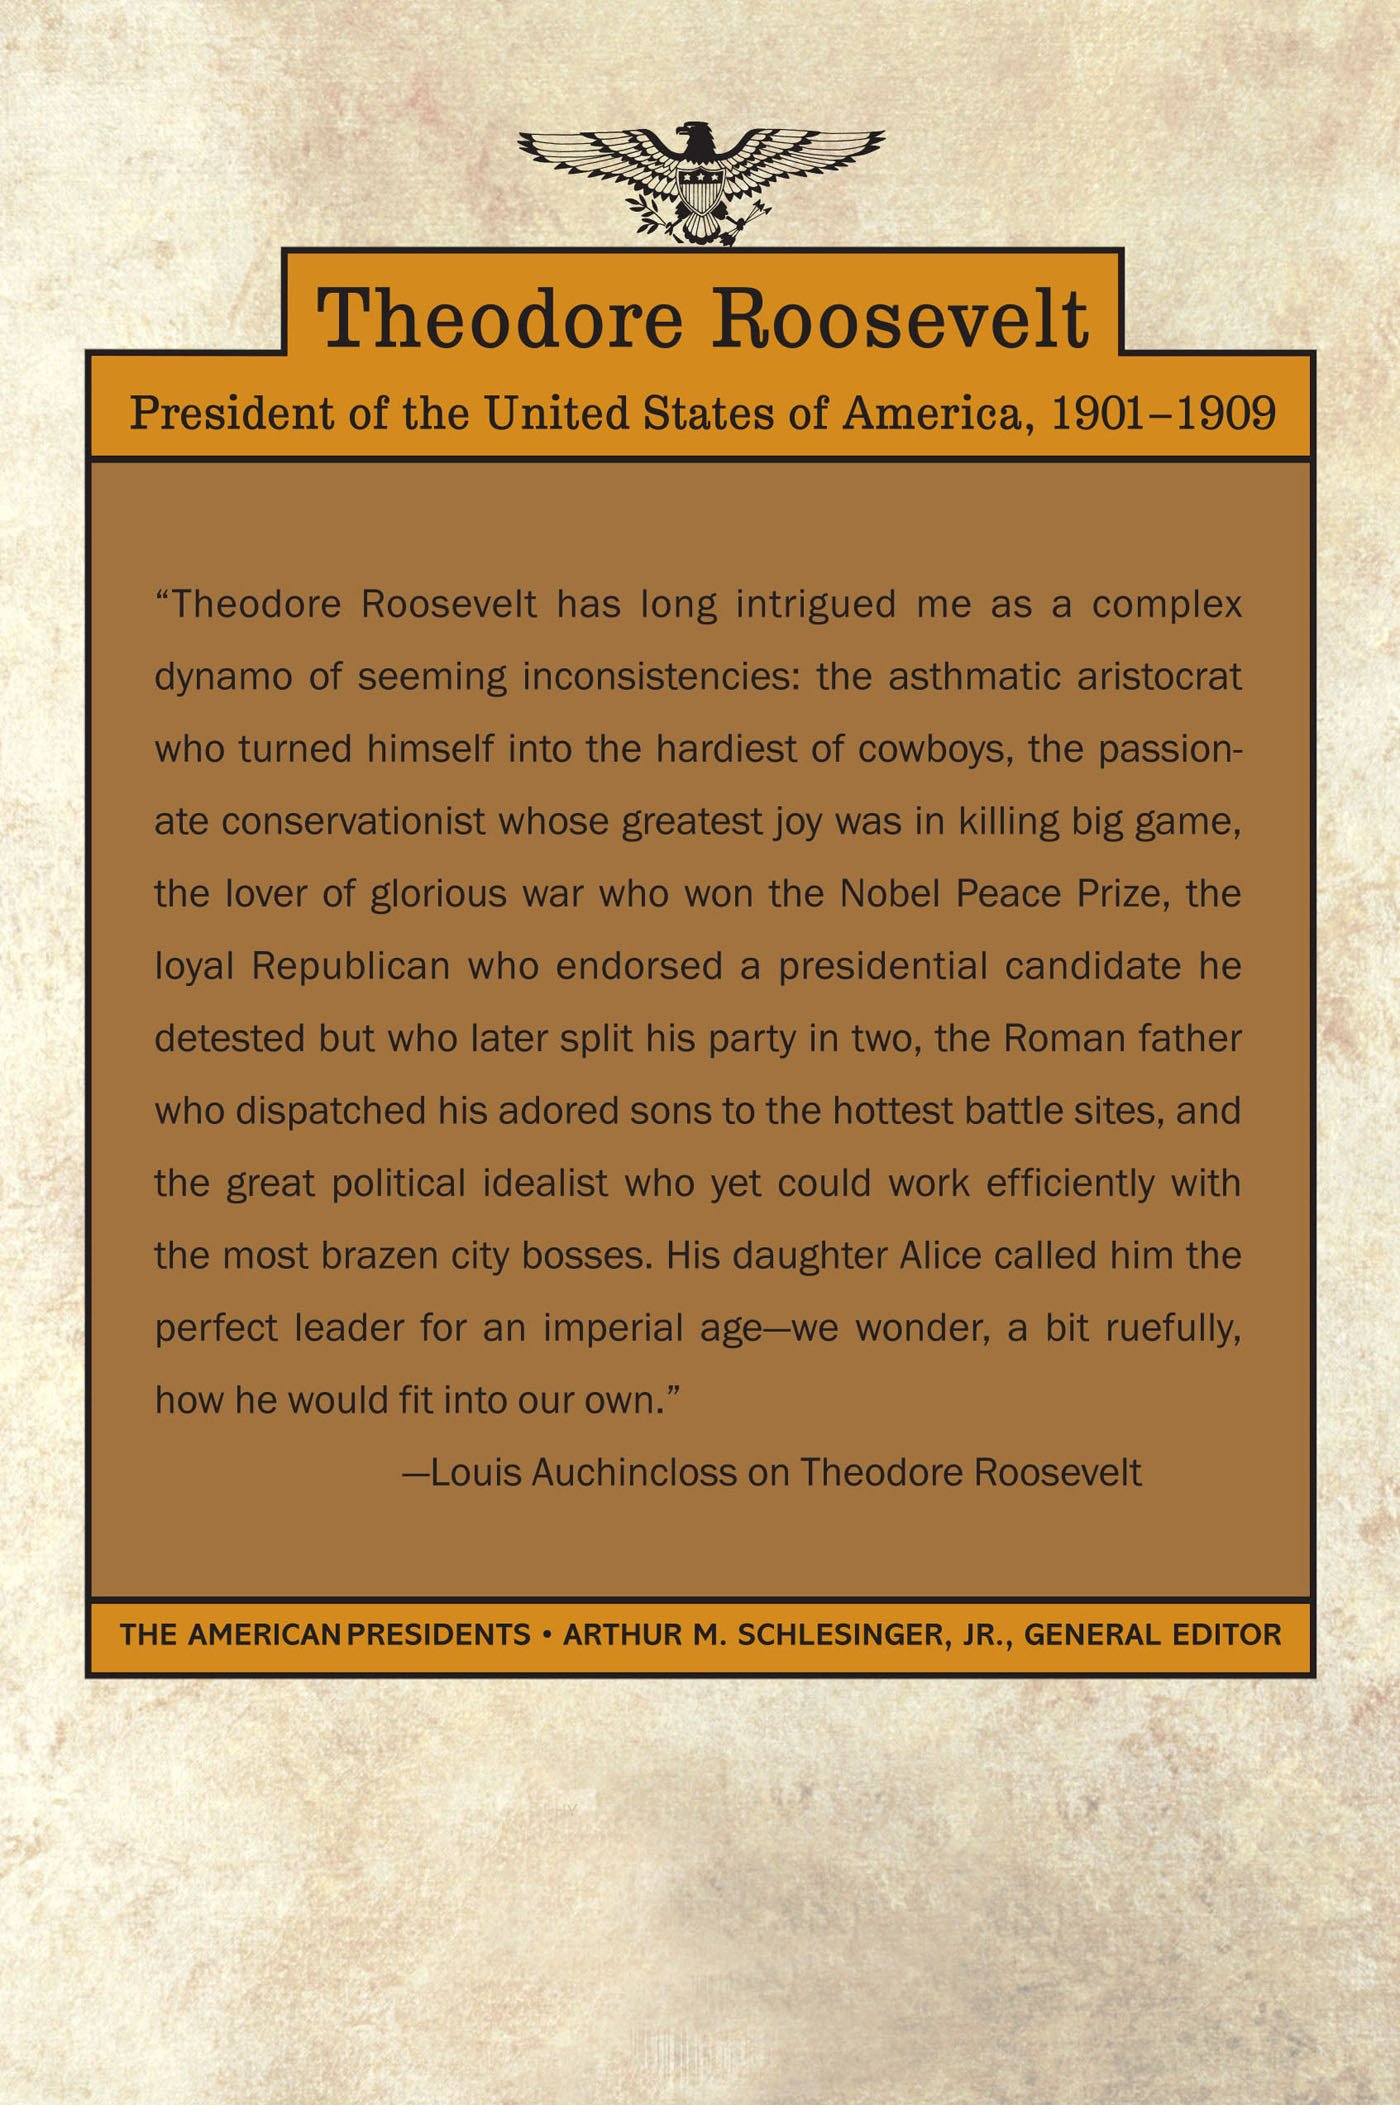 com theodore roosevelt the american presidents series  com theodore roosevelt the american presidents series the 26th president 1901 1909 9780805069068 louis auchincloss arthur m schlesinger